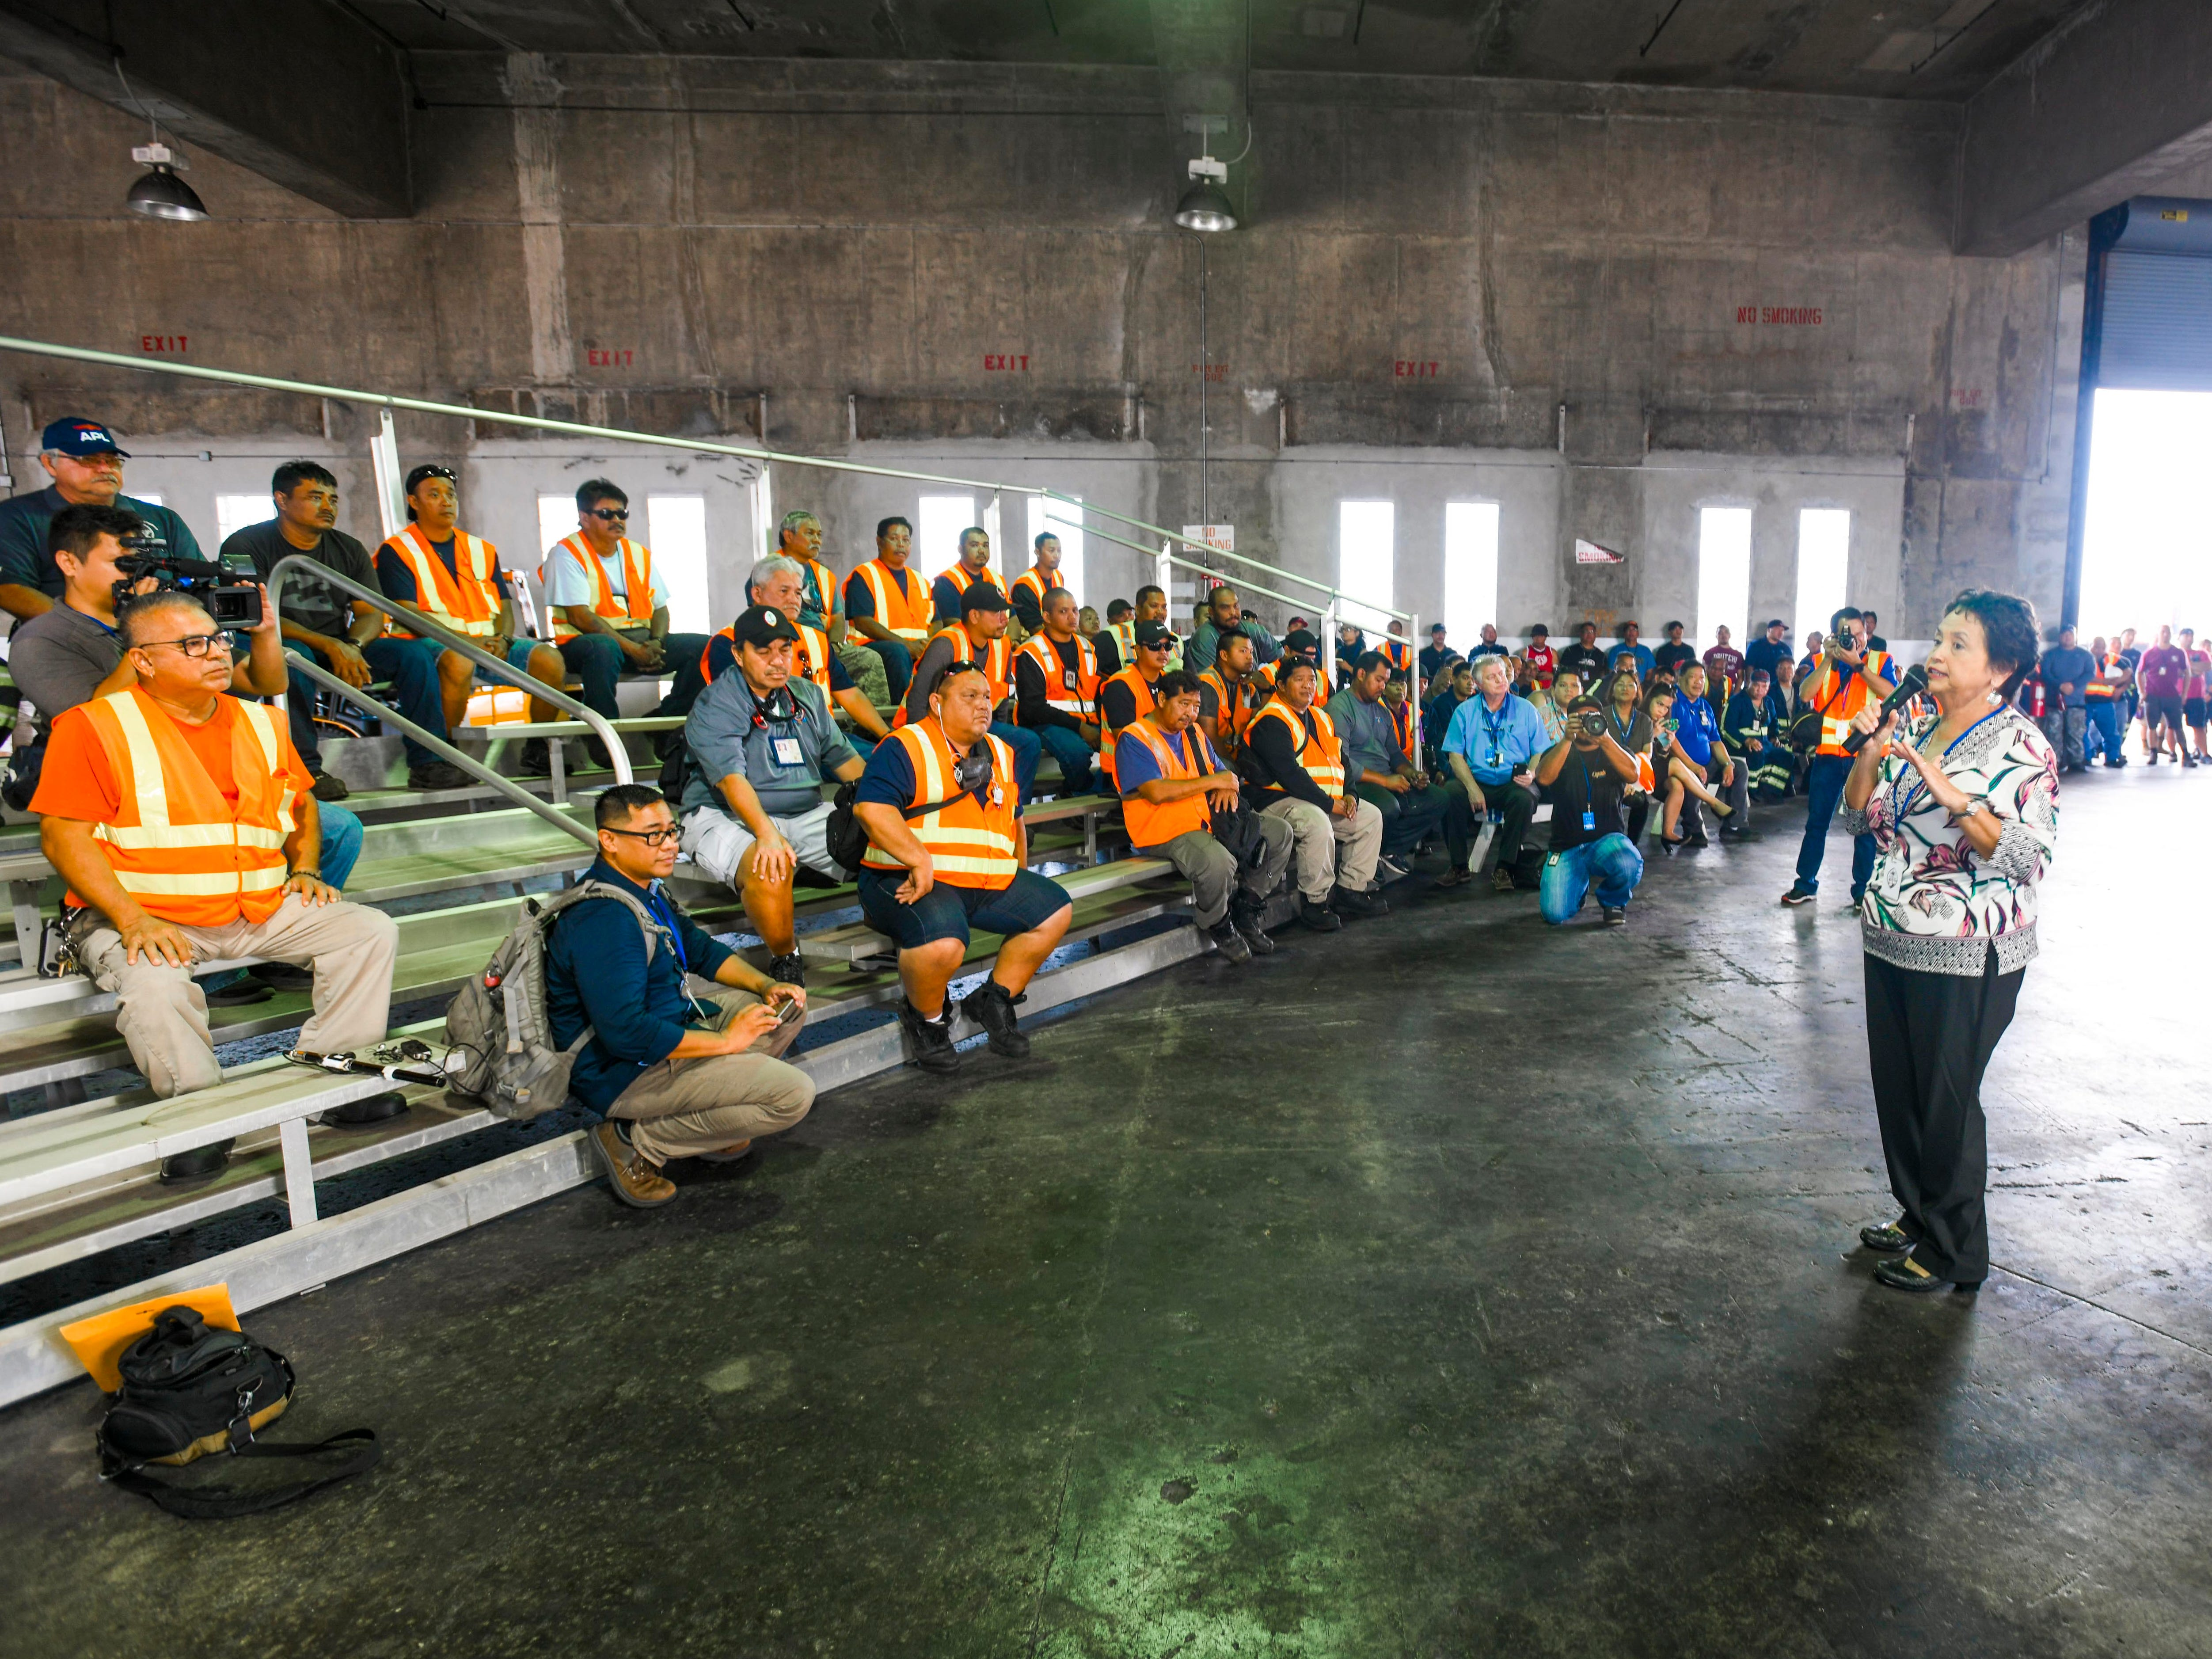 Gov. Lou Leon Guerrero speaks to port workers during a visit to the Jose D. Leon Guerrero Commercial Port in Piti, along with Lt. Gov. Josh Tenorio and others, on Wednesday, March 13, 2019.